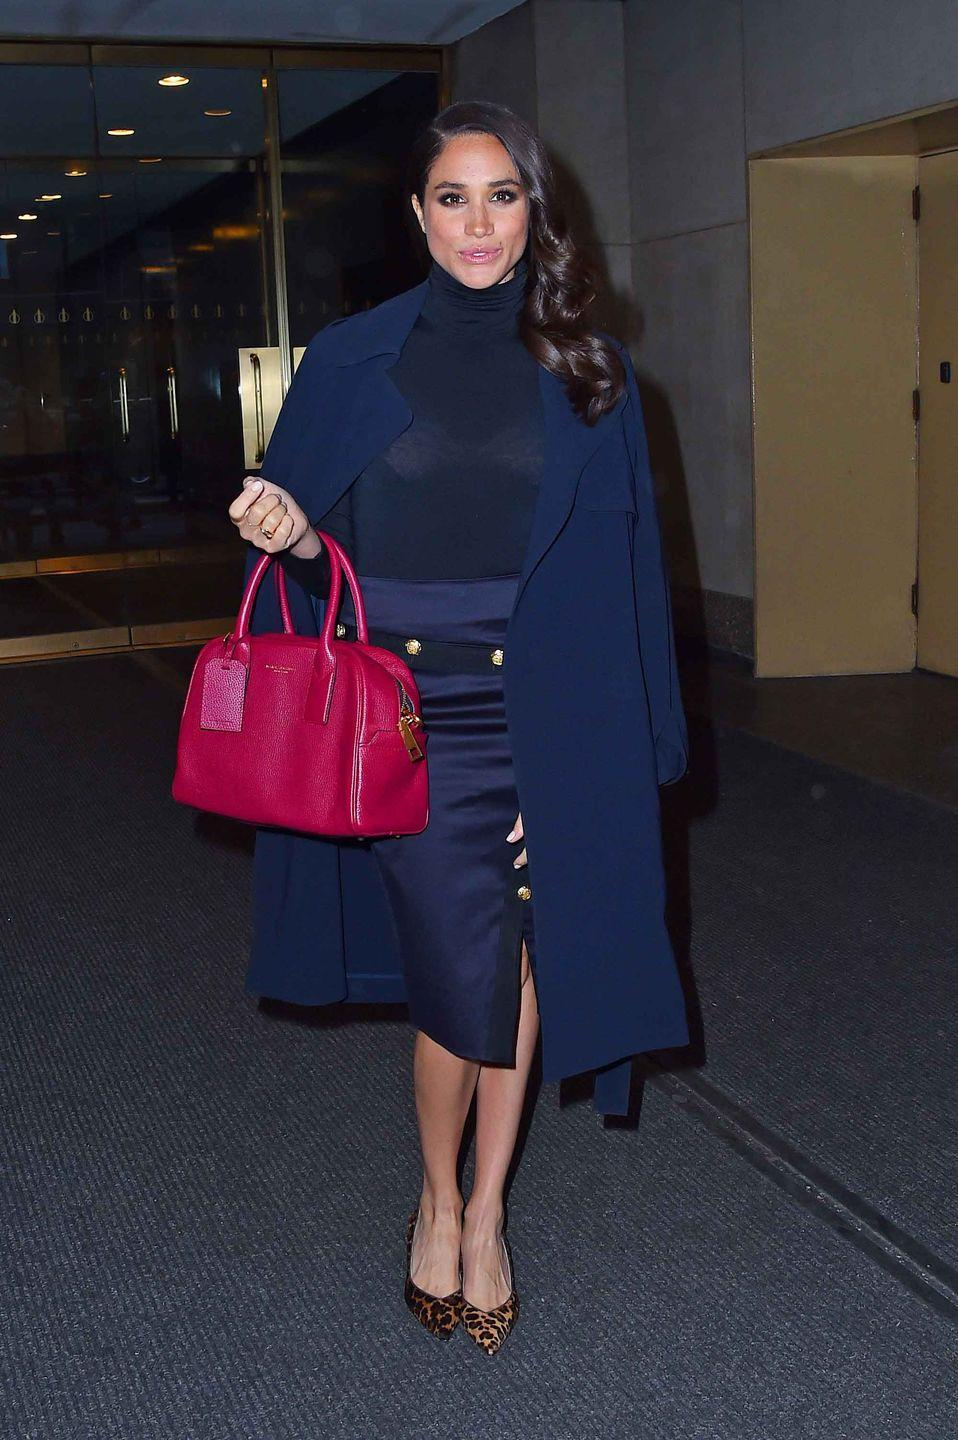 """<p>Markle wears a navy ensemble paired with a cranberry red purse and <a href=""""https://www.sarahflint.com/products/emma-chocolate-leopard?variant=37841859521"""" rel=""""nofollow noopener"""" target=""""_blank"""" data-ylk=""""slk:leopard print pumps from Sarah Flint"""" class=""""link rapid-noclick-resp"""">leopard print pumps from Sarah Flint</a>.</p><p><a class=""""link rapid-noclick-resp"""" href=""""https://go.redirectingat.com?id=74968X1596630&url=https%3A%2F%2Fwww.sarahflint.com%2Fproducts%2Femma-chocolate-leopard%3Fvariant%3D37841859521&sref=https%3A%2F%2Fwww.townandcountrymag.com%2Fstyle%2Ffashion-trends%2Fg3272%2Fmeghan-markle-preppy-style%2F"""" rel=""""nofollow noopener"""" target=""""_blank"""" data-ylk=""""slk:SHOP NOW"""">SHOP NOW</a> <em>Emma Block Heel Pump by Sarah Flint, $375</em><br></p>"""